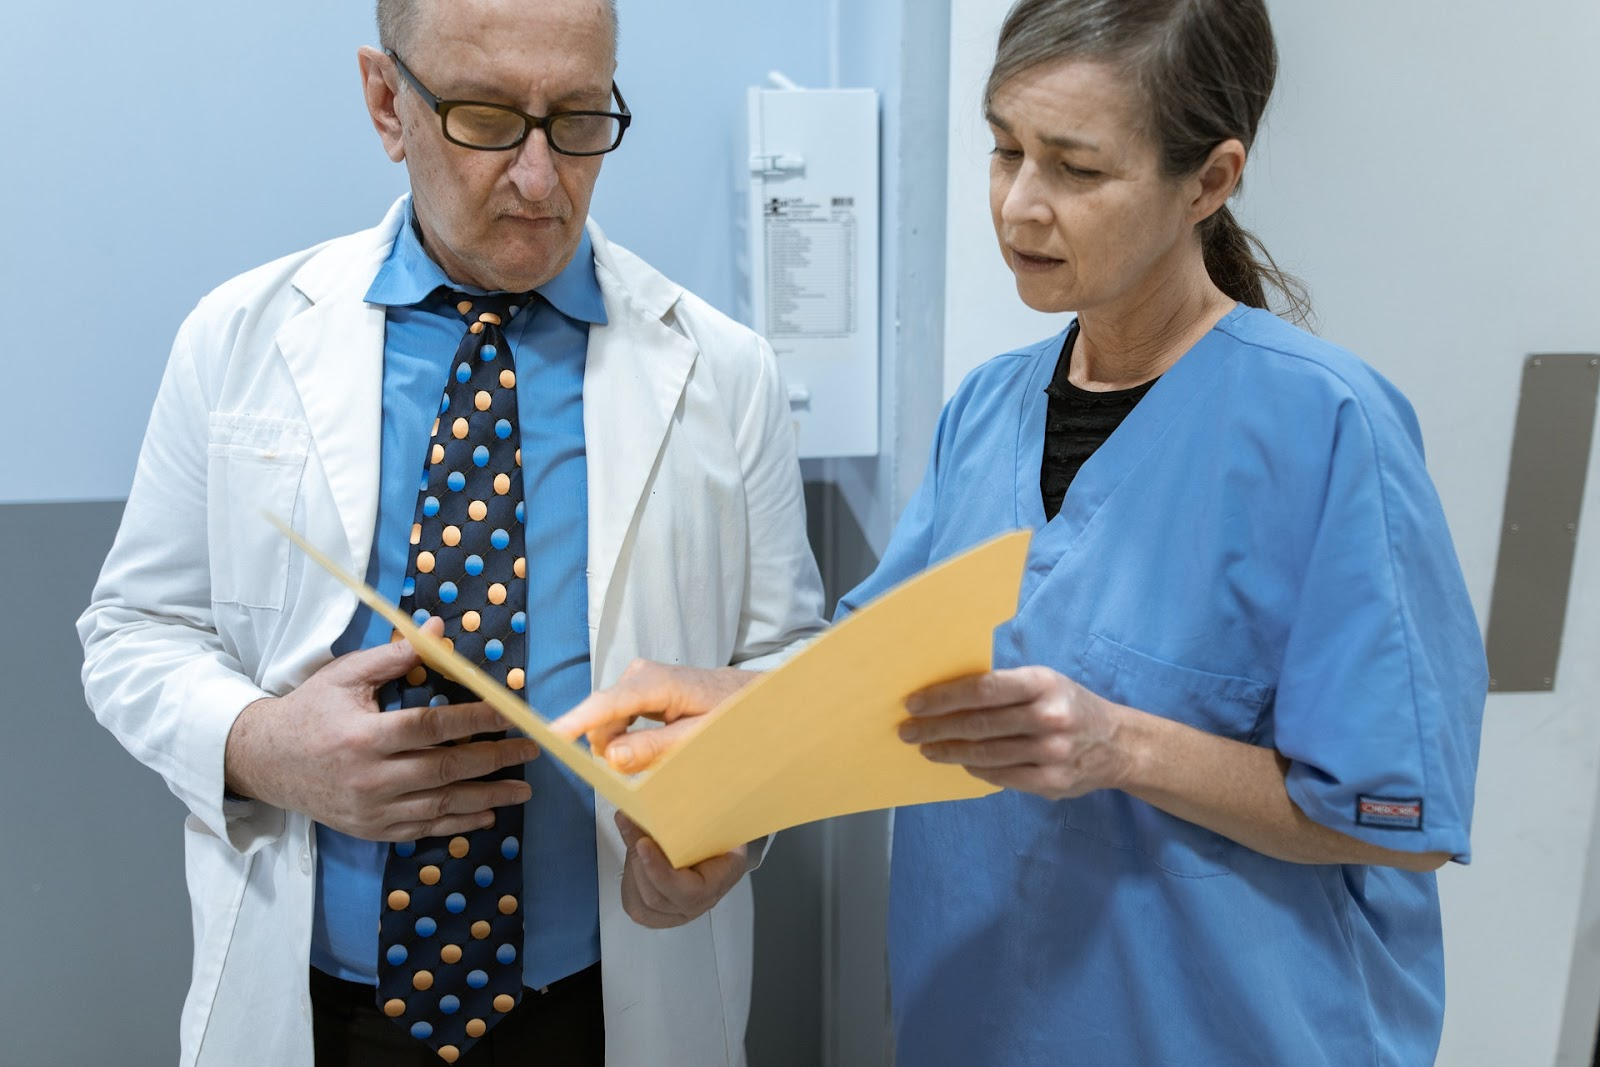 A nurse in scrubs goes over a file with a doctor in a labcoat, as they both hold the file between them in a hallway.